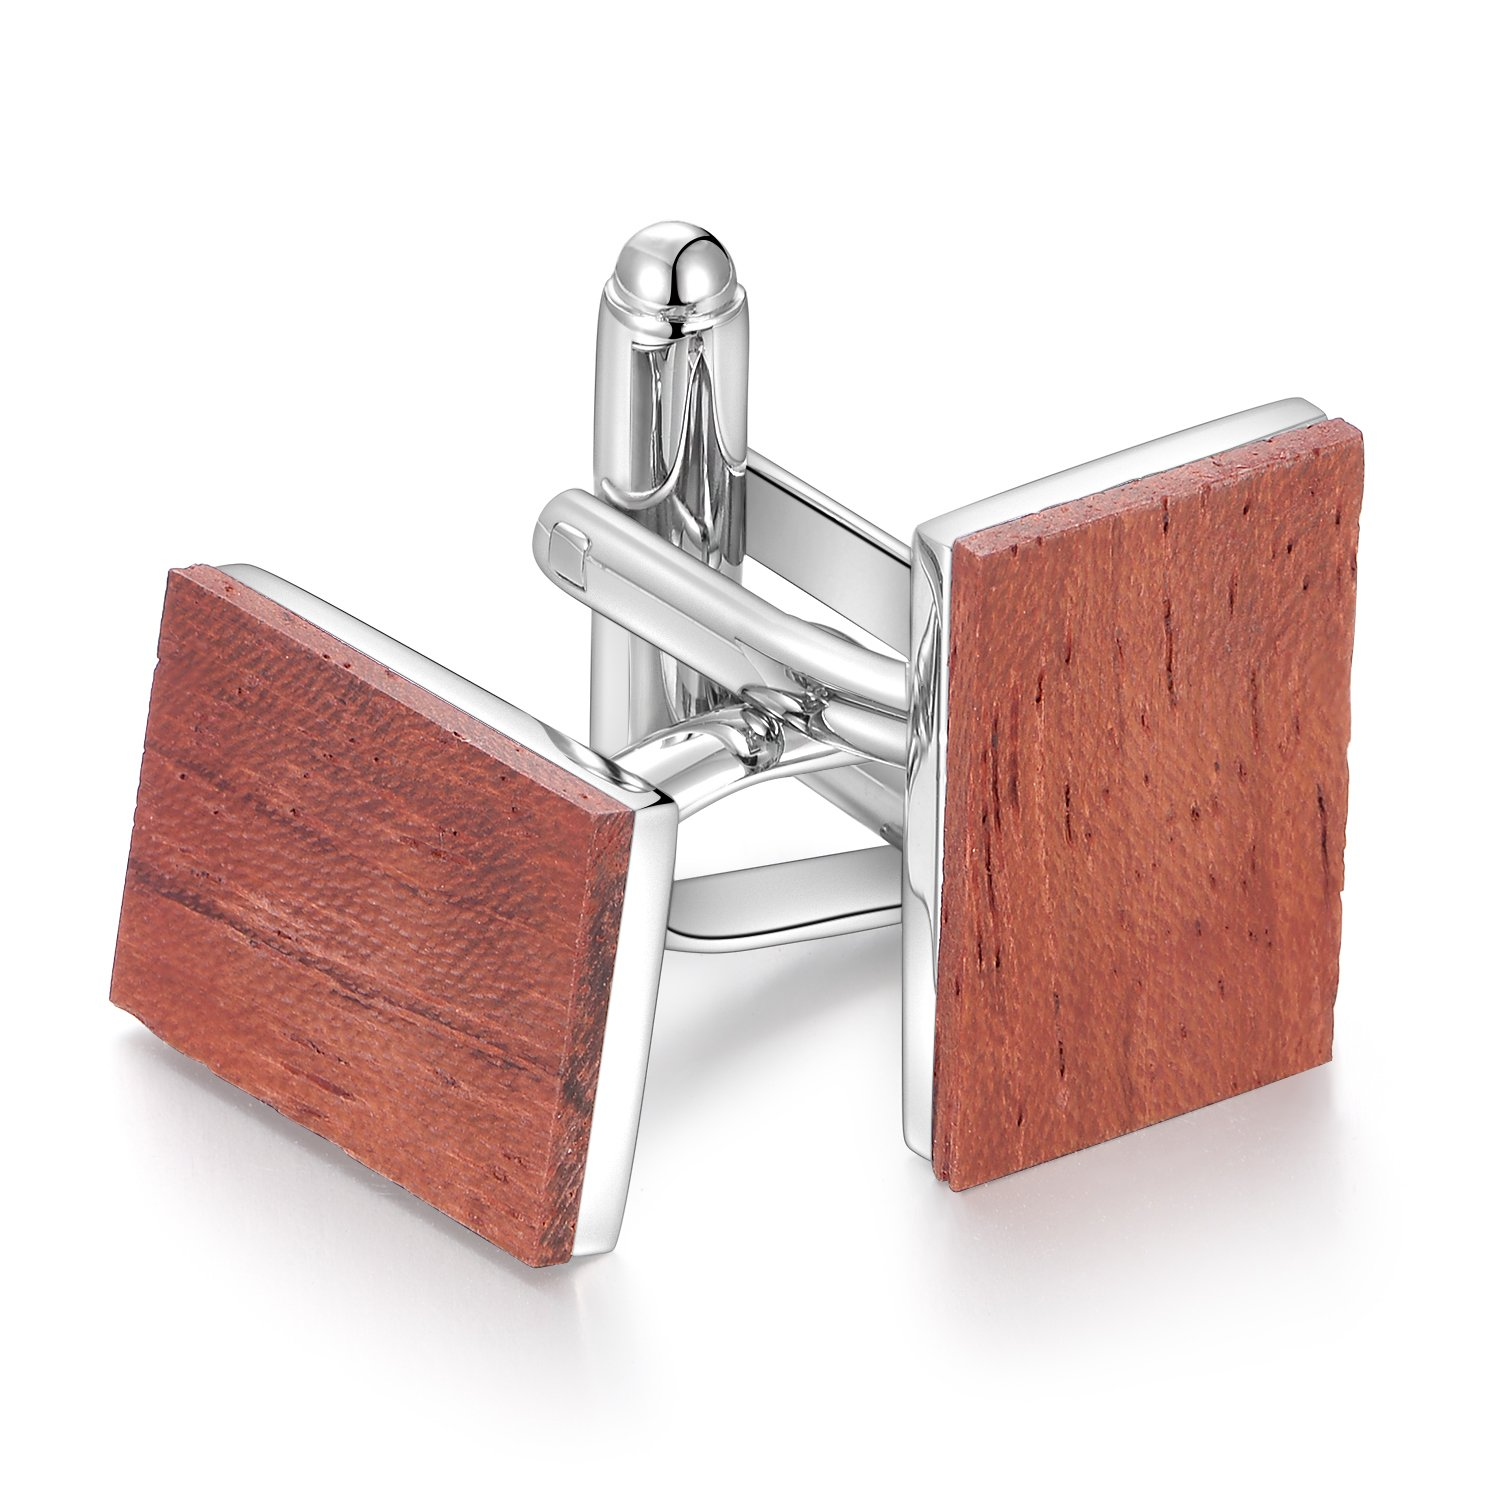 Anfly Smart Bubinga Wood Cufflinks Men's Natural Wooden Cuff Links Wedding Business